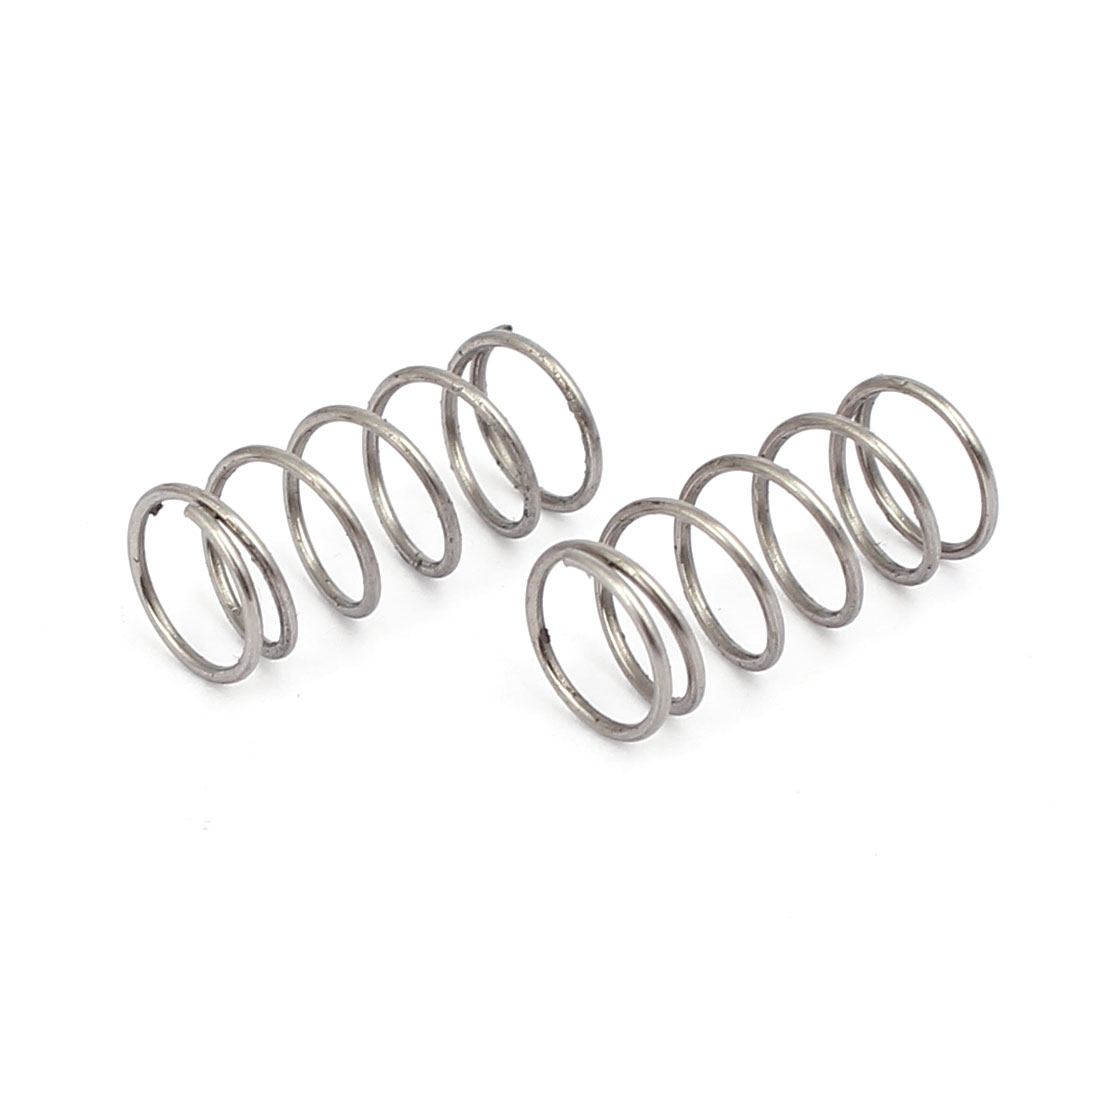 0.6mmx7mmx15mm 304 Stainless Steel Compression Springs Silver Tone 10pcs - image 1 of 3